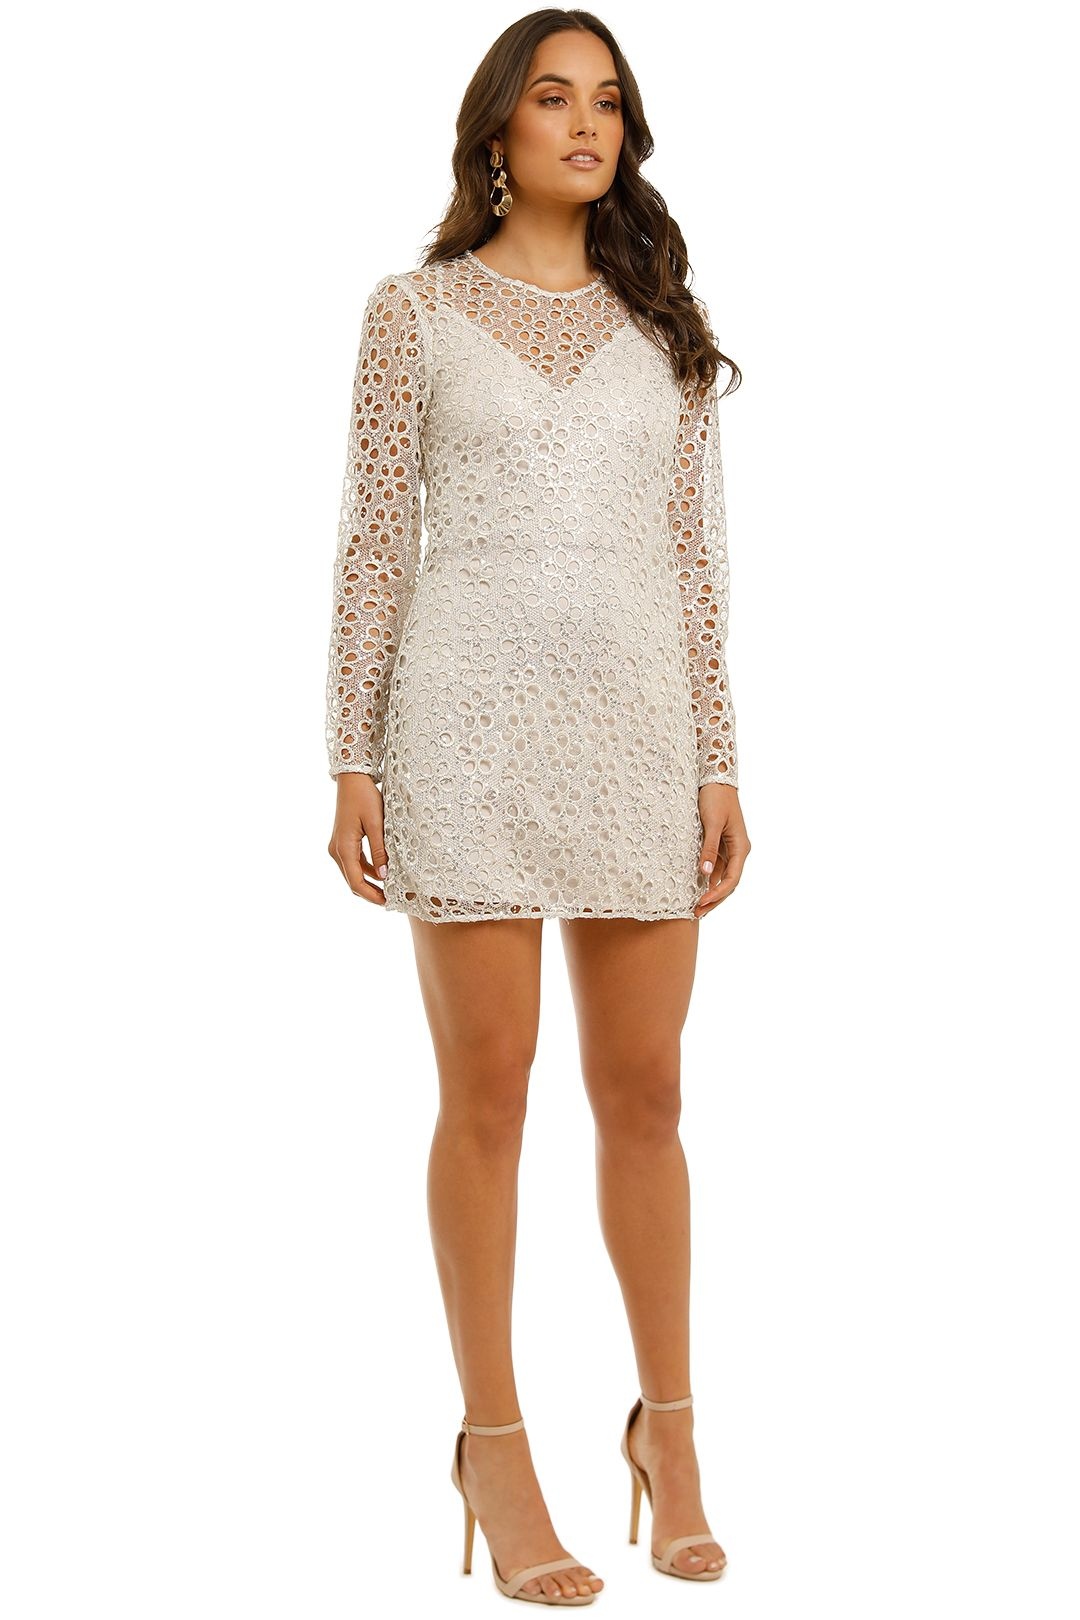 Stevie May-Concord-LS Mini-Dress-Silver-Side